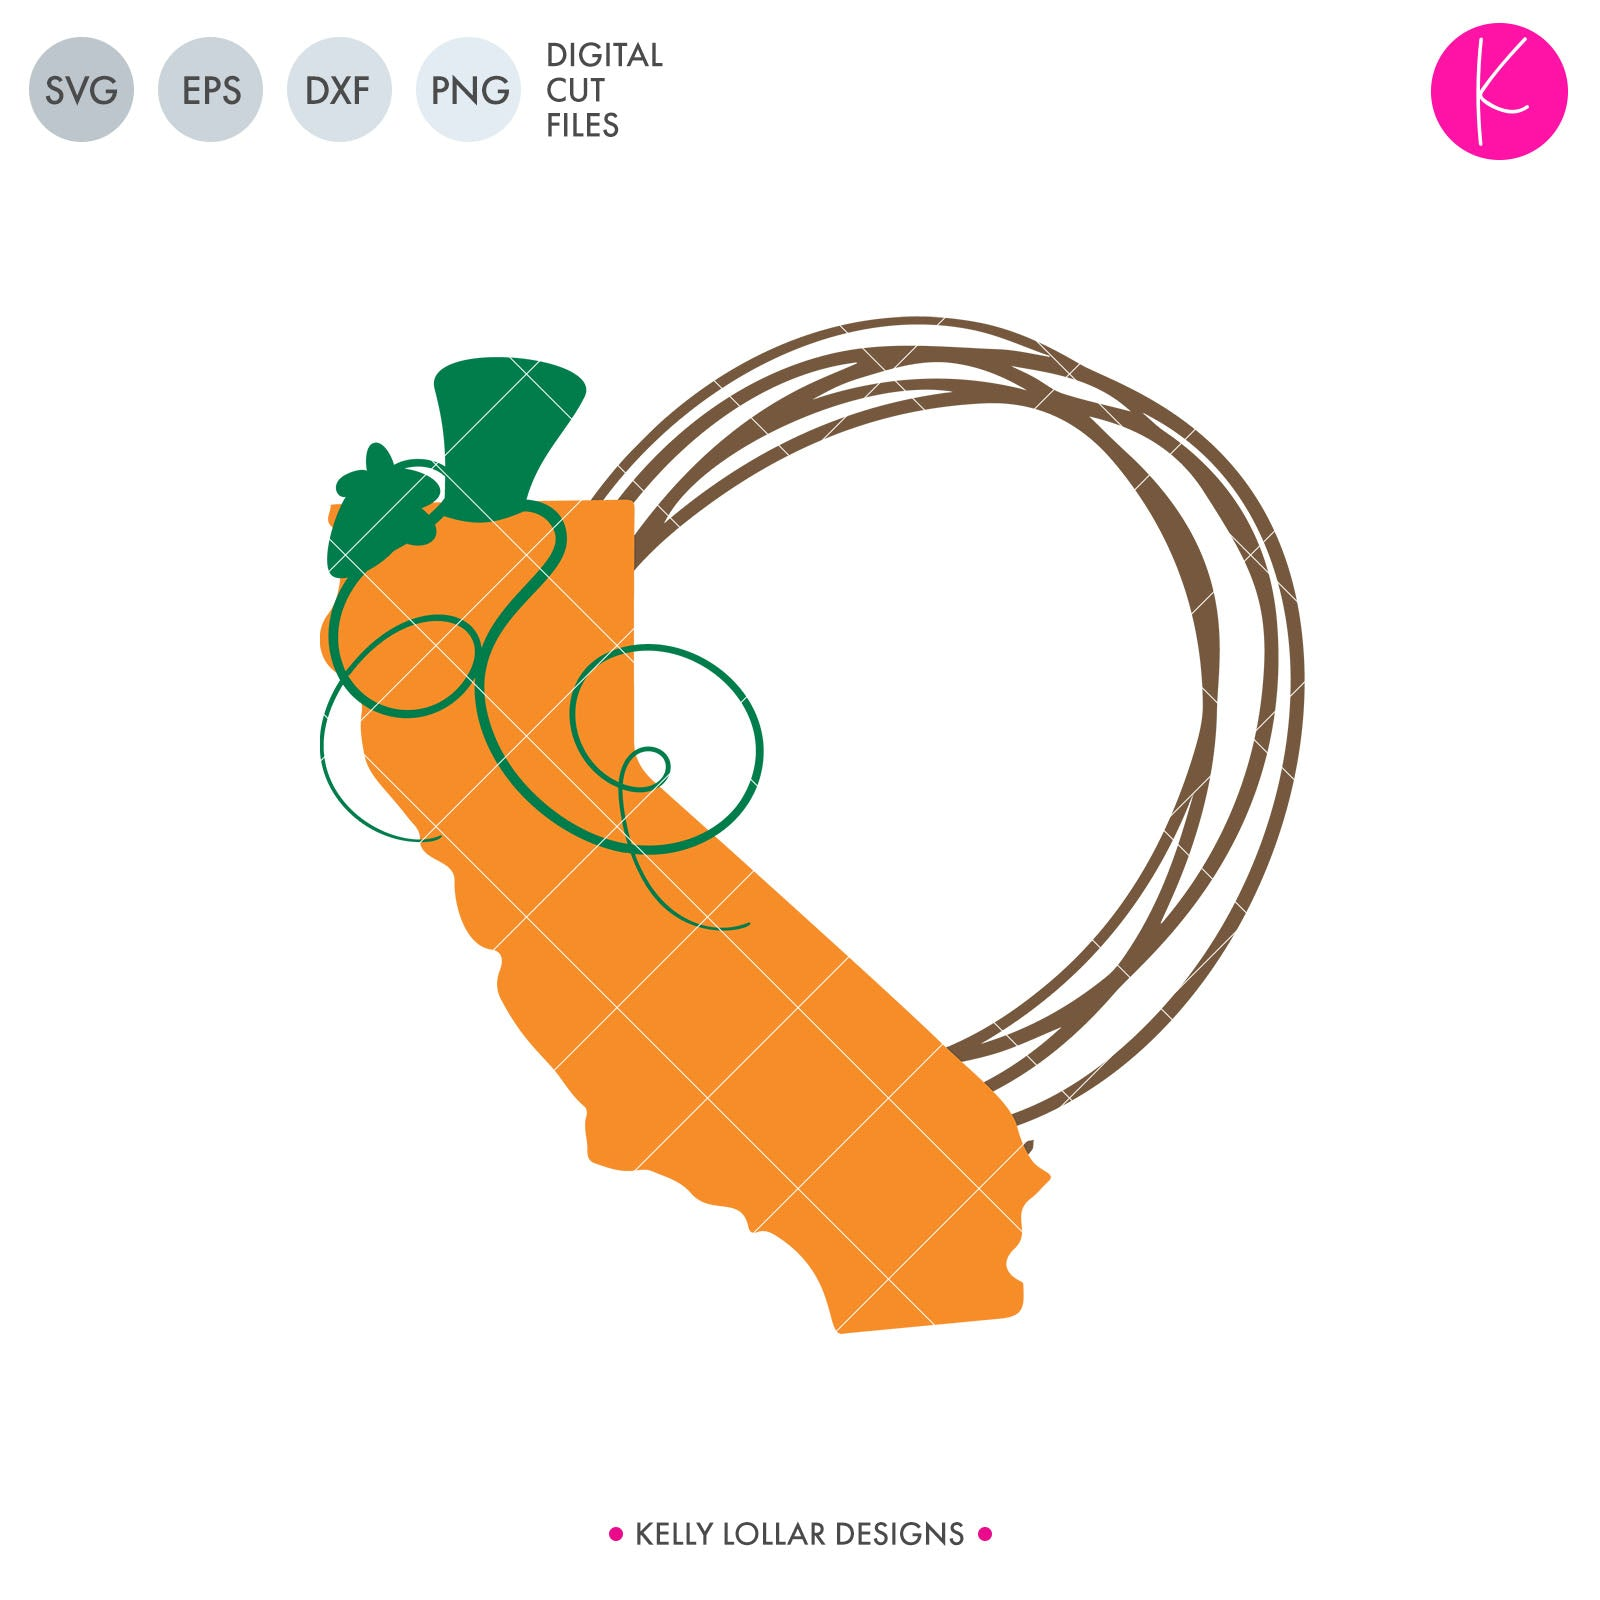 California State Bundle Svg Dxf Eps Png Cut Files Kelly Lollar Designs